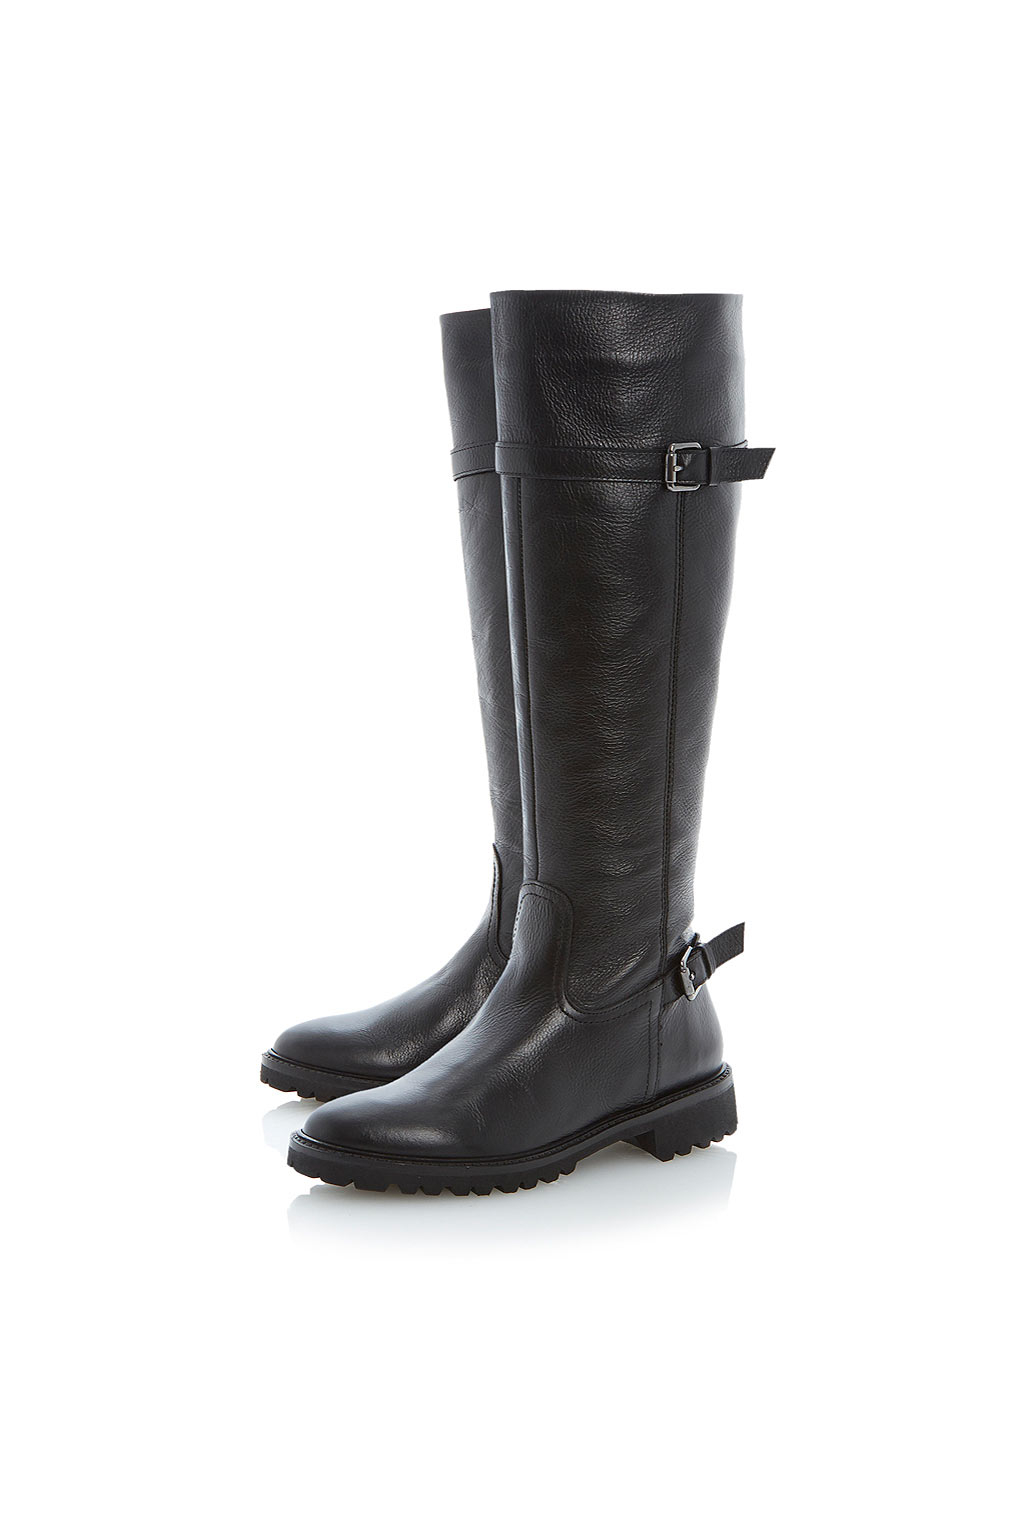 TOPSHOP Thunder Cleated Sole Knee High Leather Boots By Bertie Ladies in Black